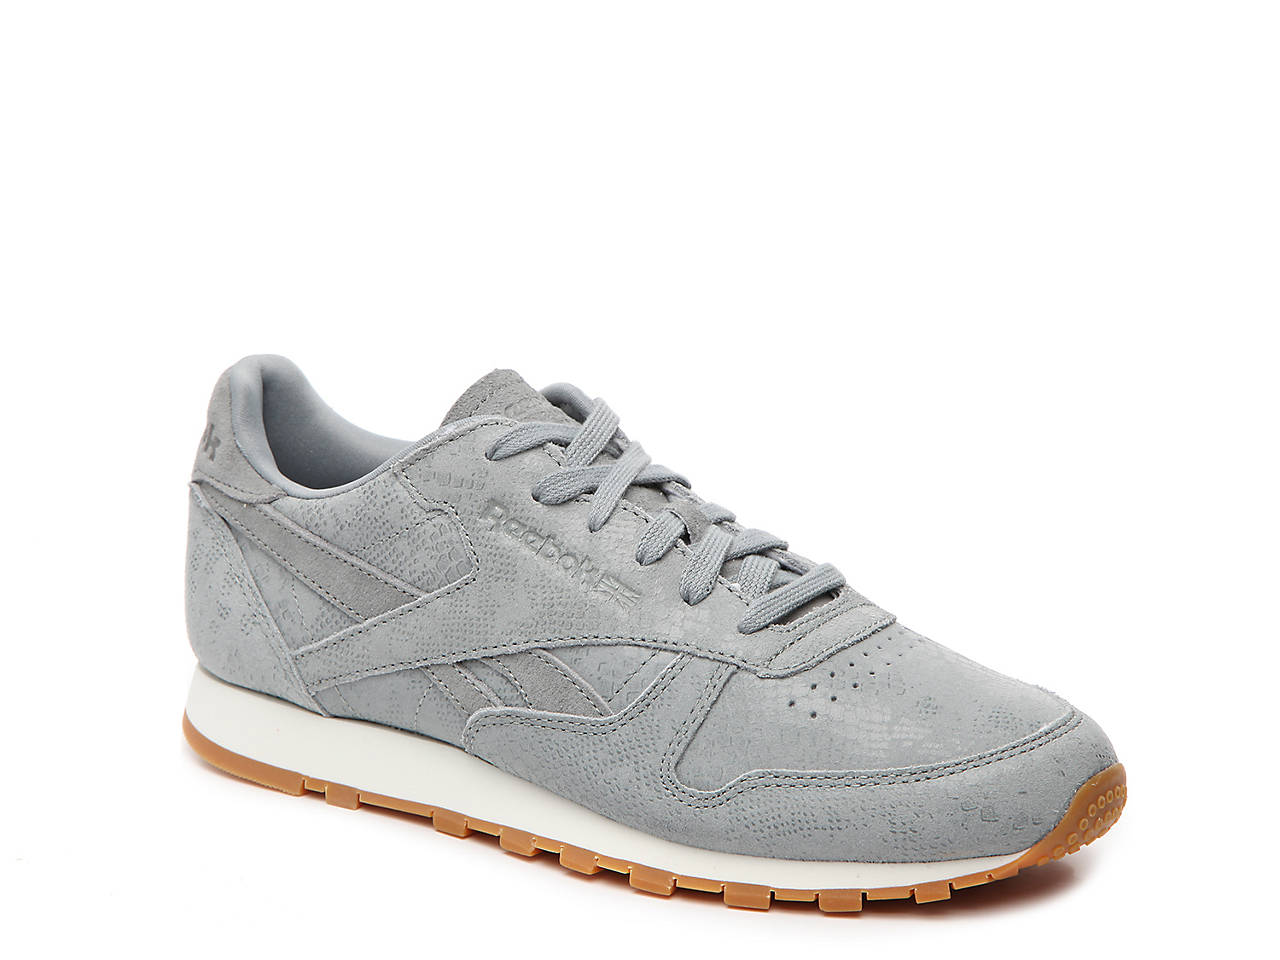 Reebok Classic Leather Clean Exotics Sneaker - Women s Women s Shoes ... 7aa10678e